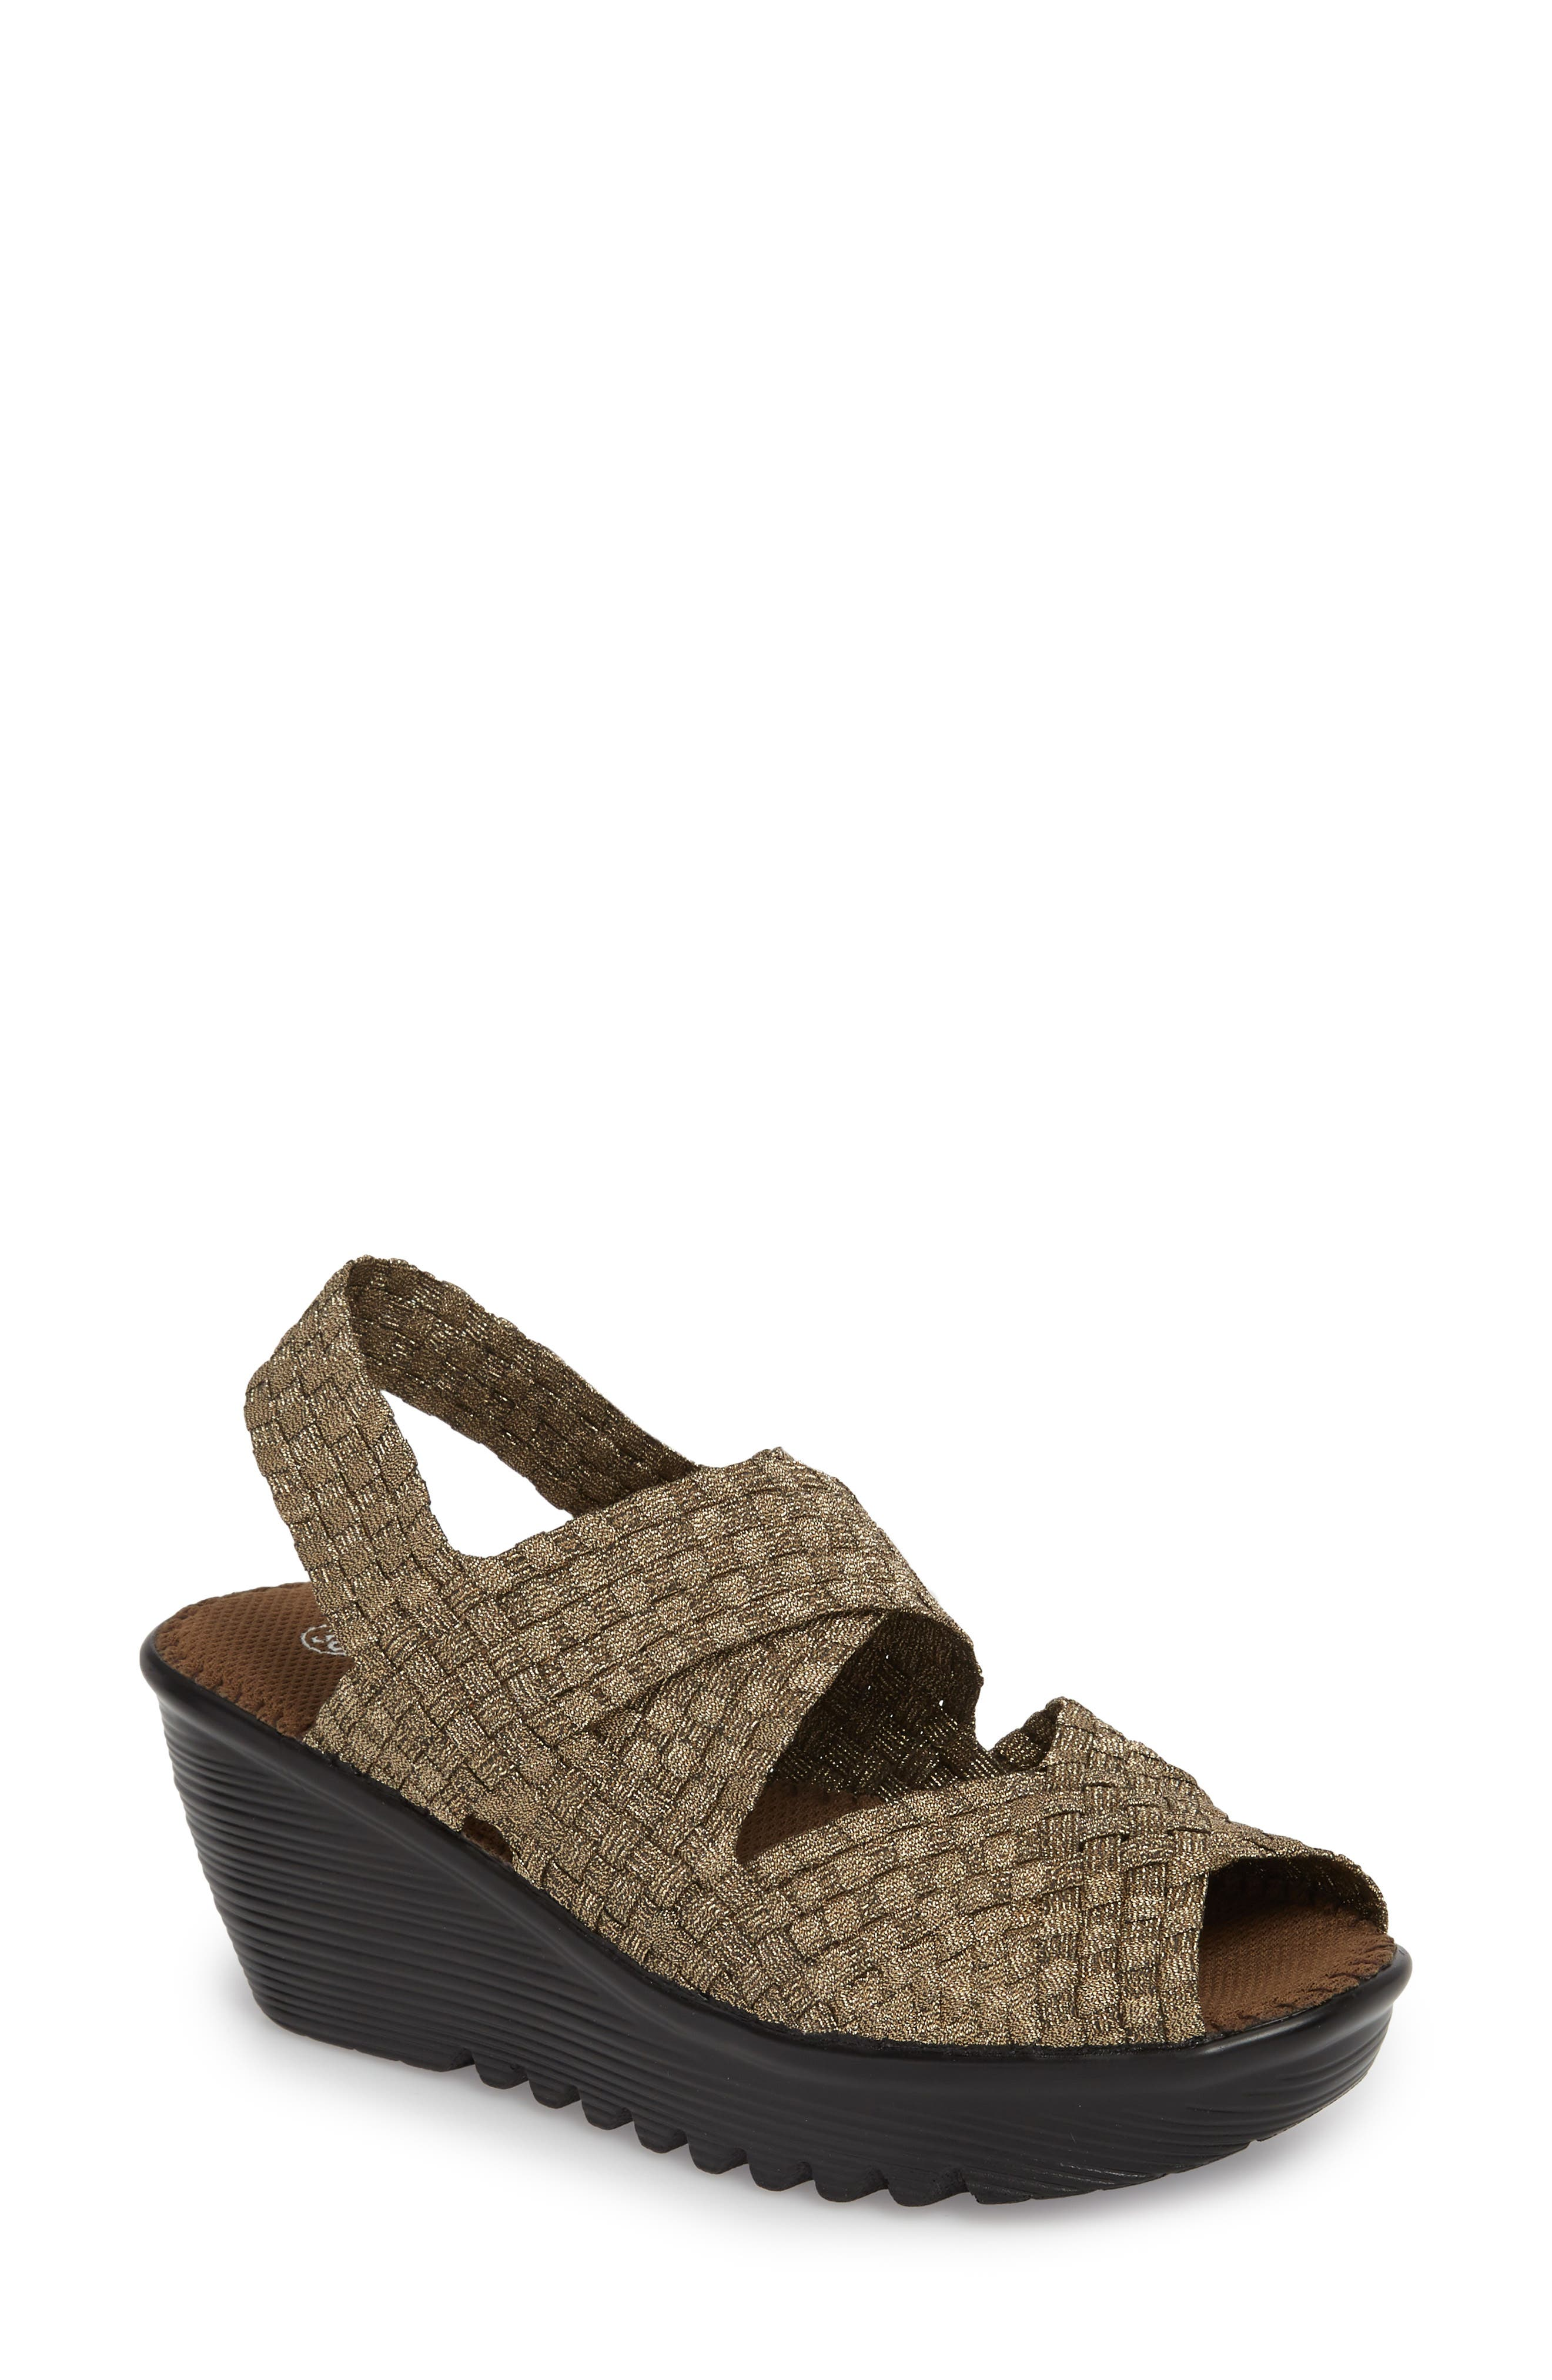 Jessica Wedge Sandal,                         Main,                         color, Bronze Fabric